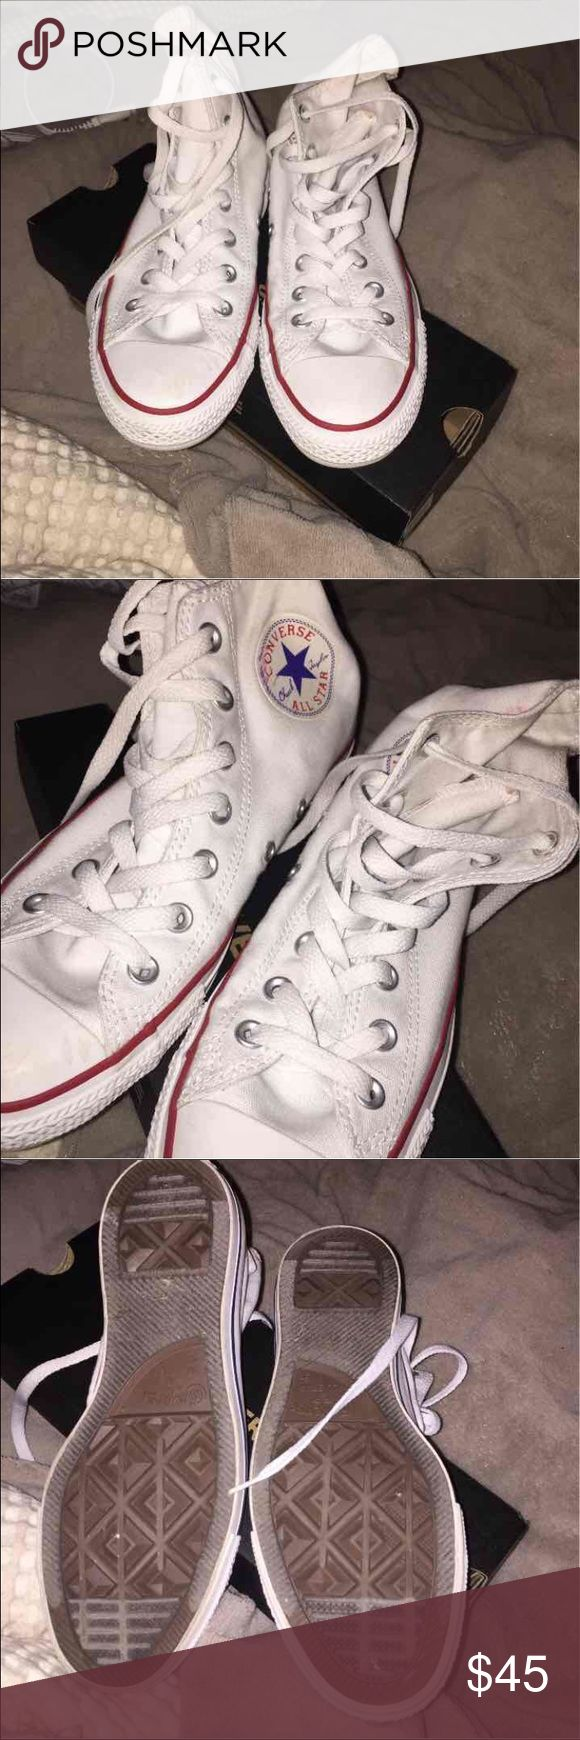 White converse shoes HIGHTOP CONVERSE WHITE RED AND BLUE SIZE 7.5 THE SHOES ARE AS IS AND THE PRICE IS FIRM...NO TRADES BOTTOMS ARE CLEAN Converse Shoes Sneakers